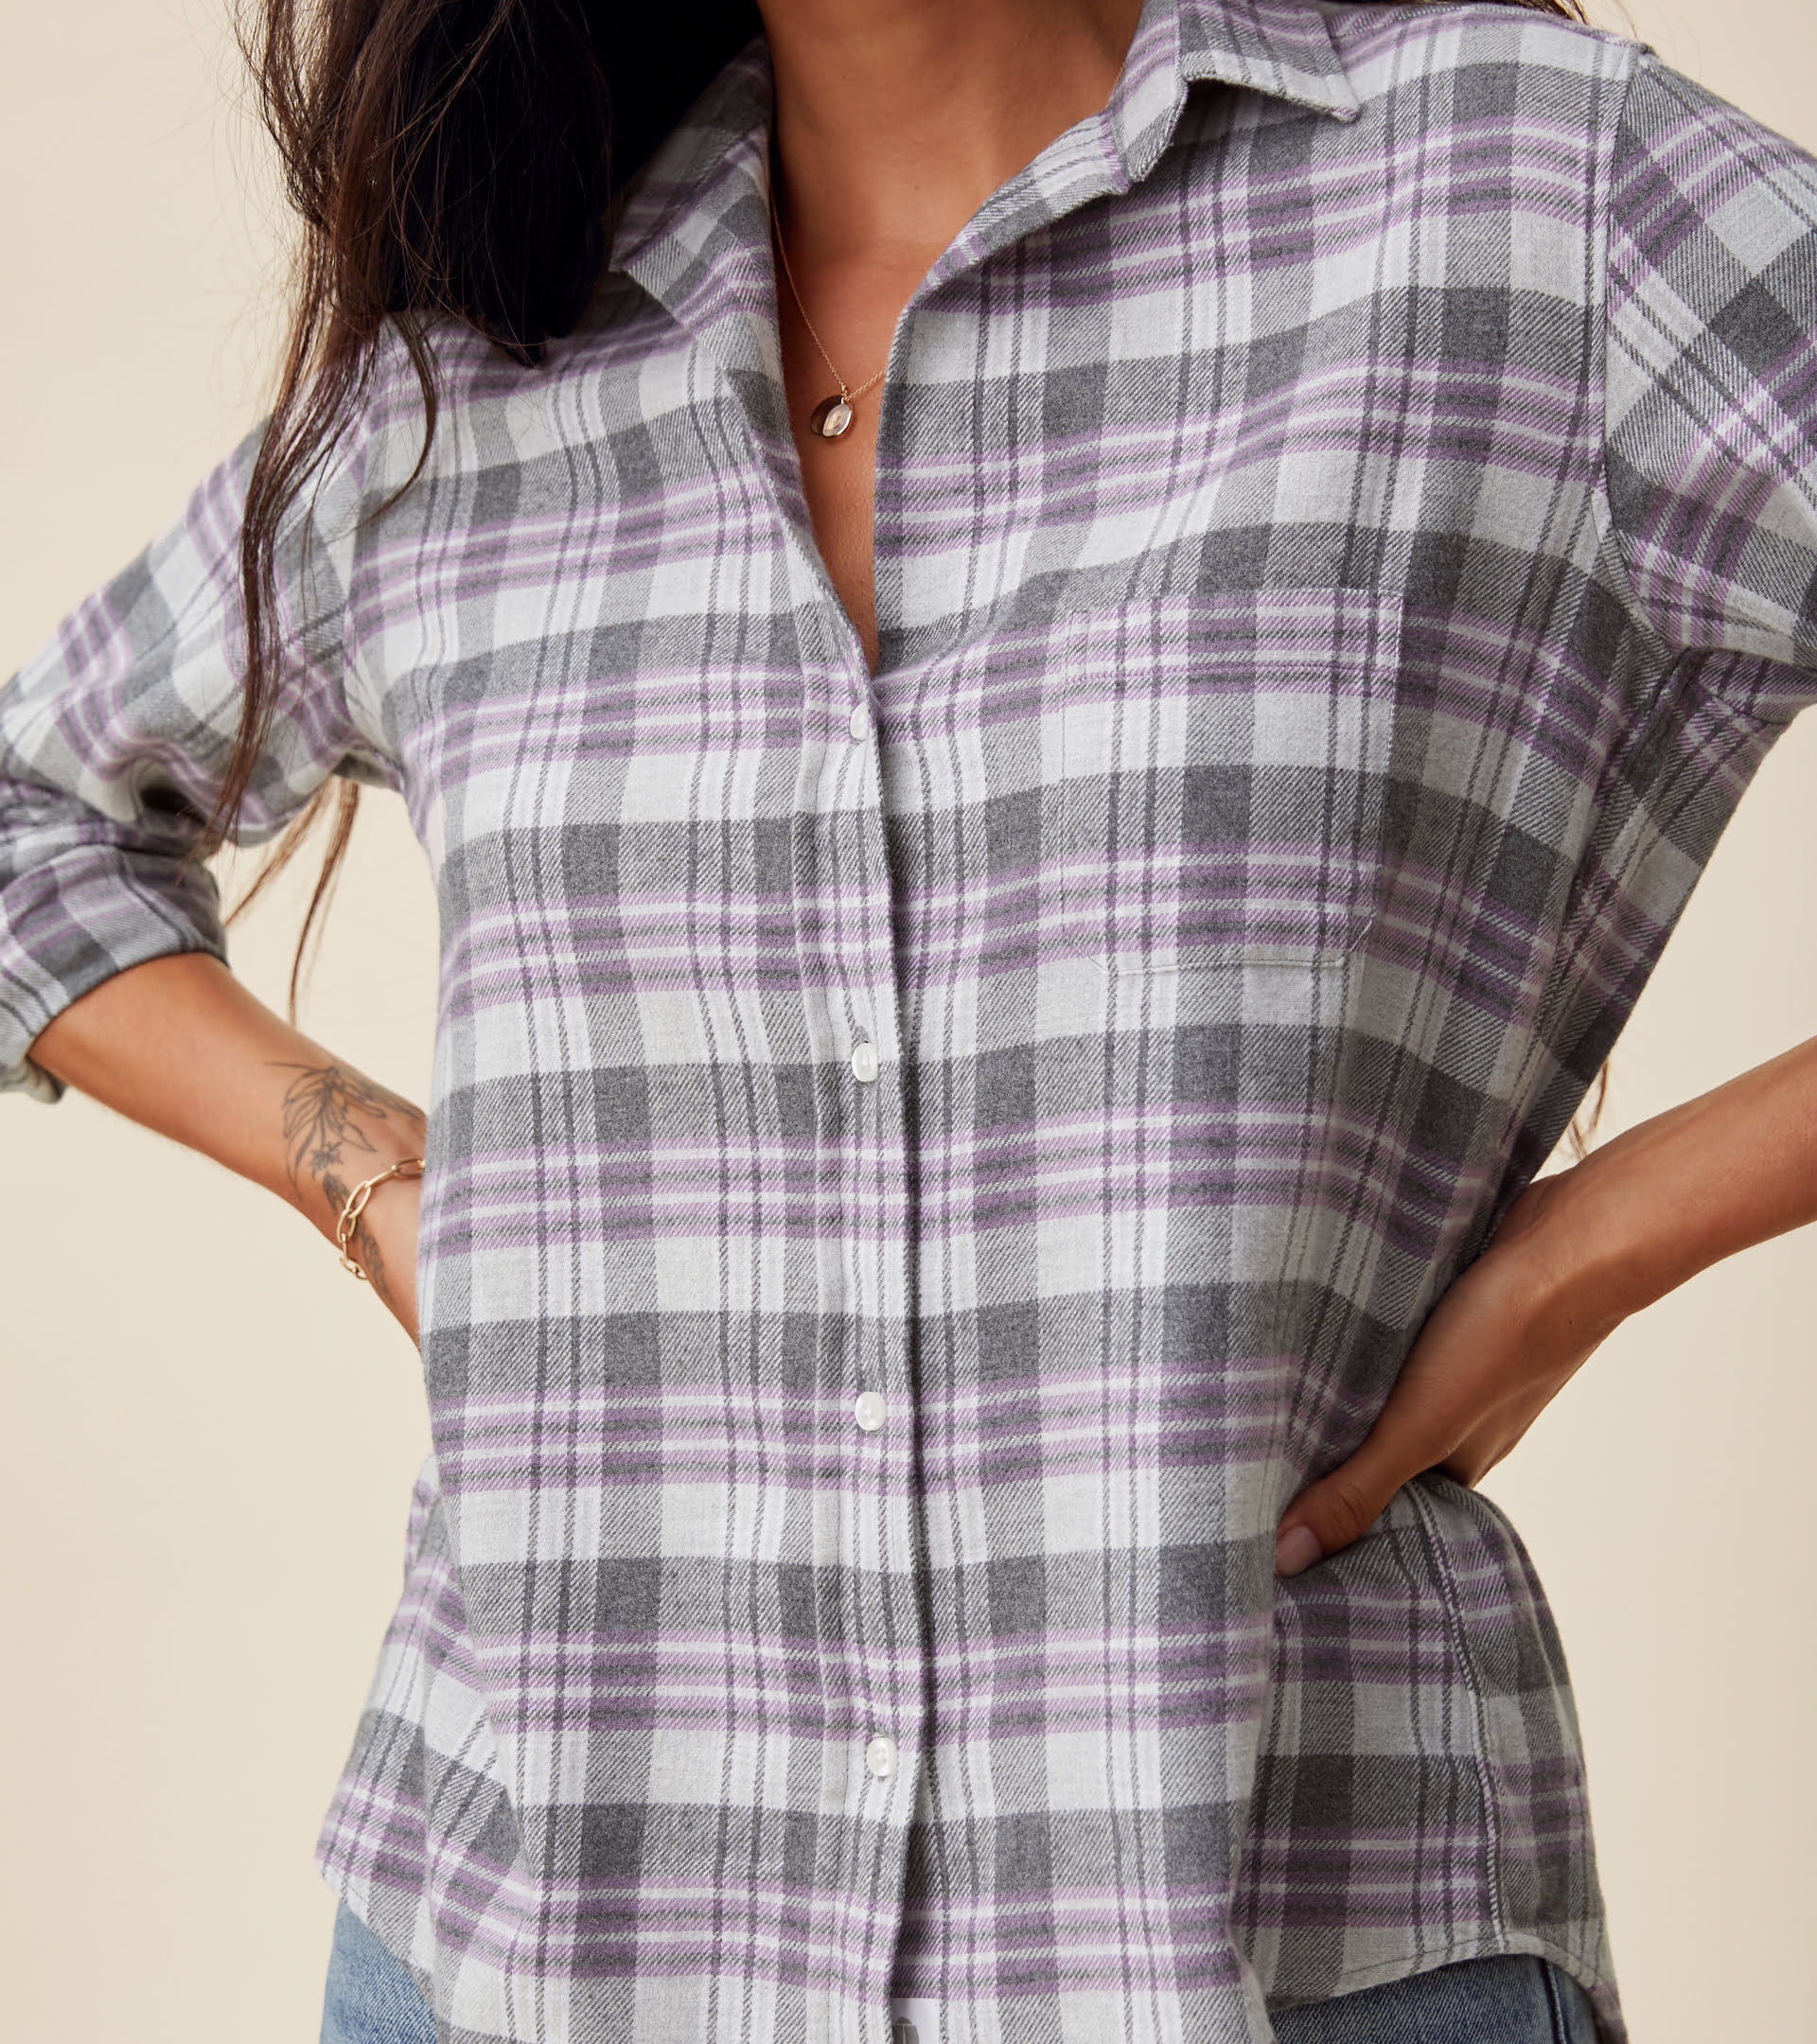 The Hero Button-Up Shirt Gray, White, and Purple Plaid, Plush Flannel view 2